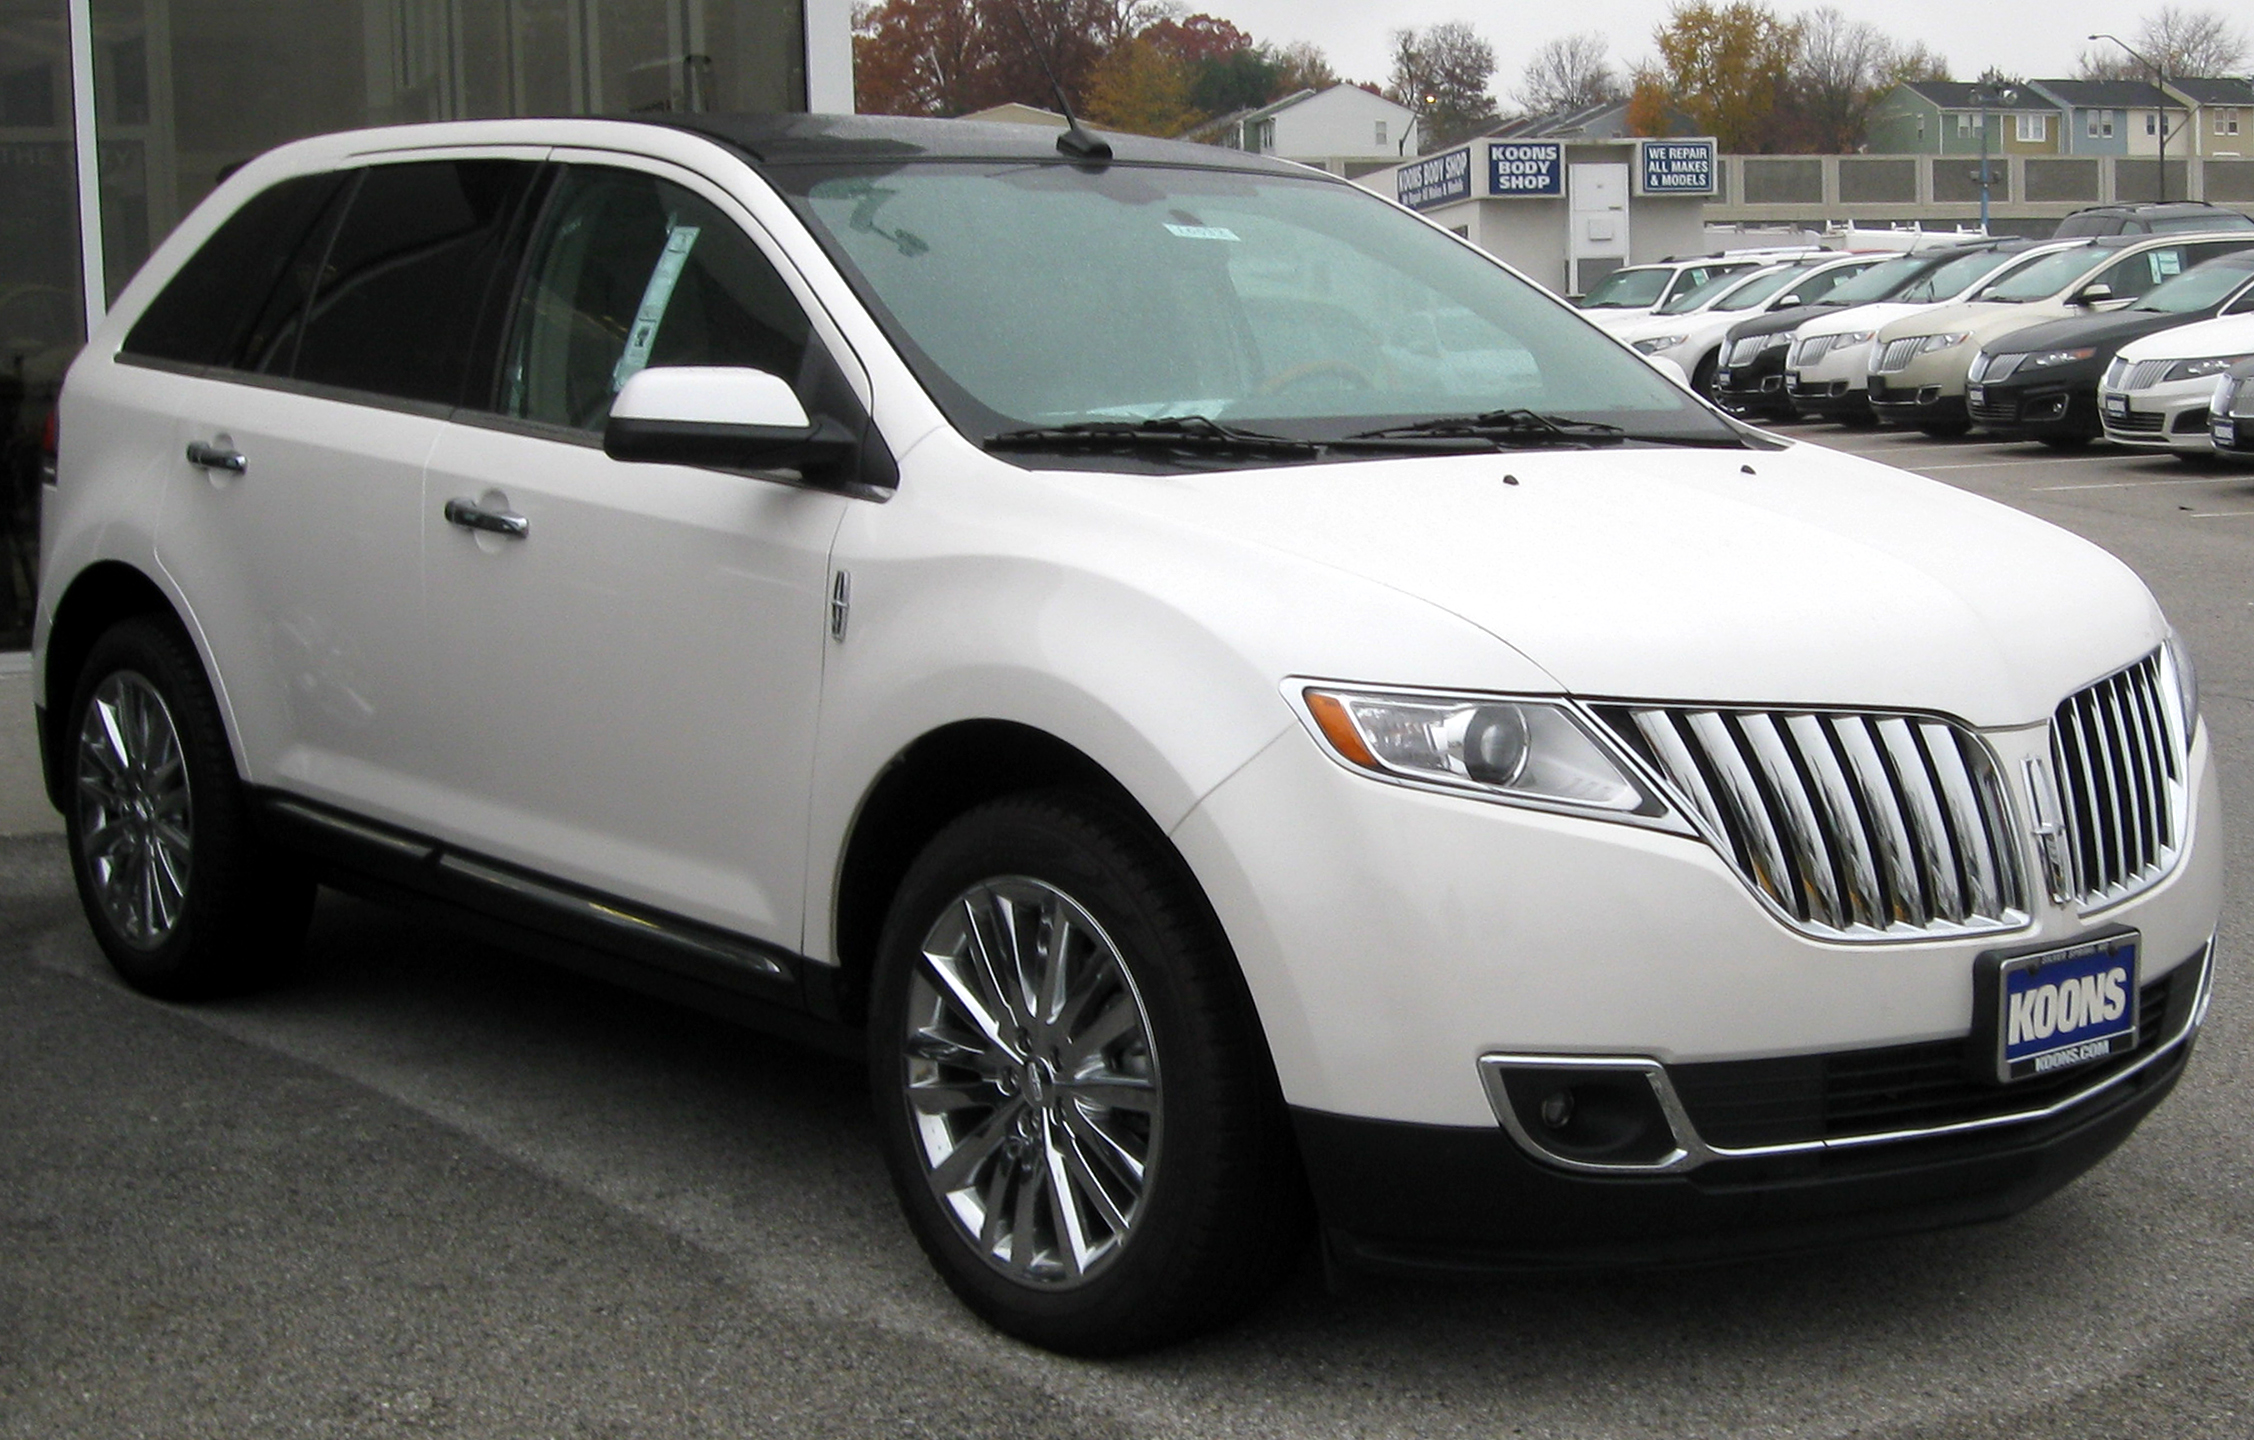 File:Lincoln MKX -- 11-10-2011.jpg - Wikimedia Commons